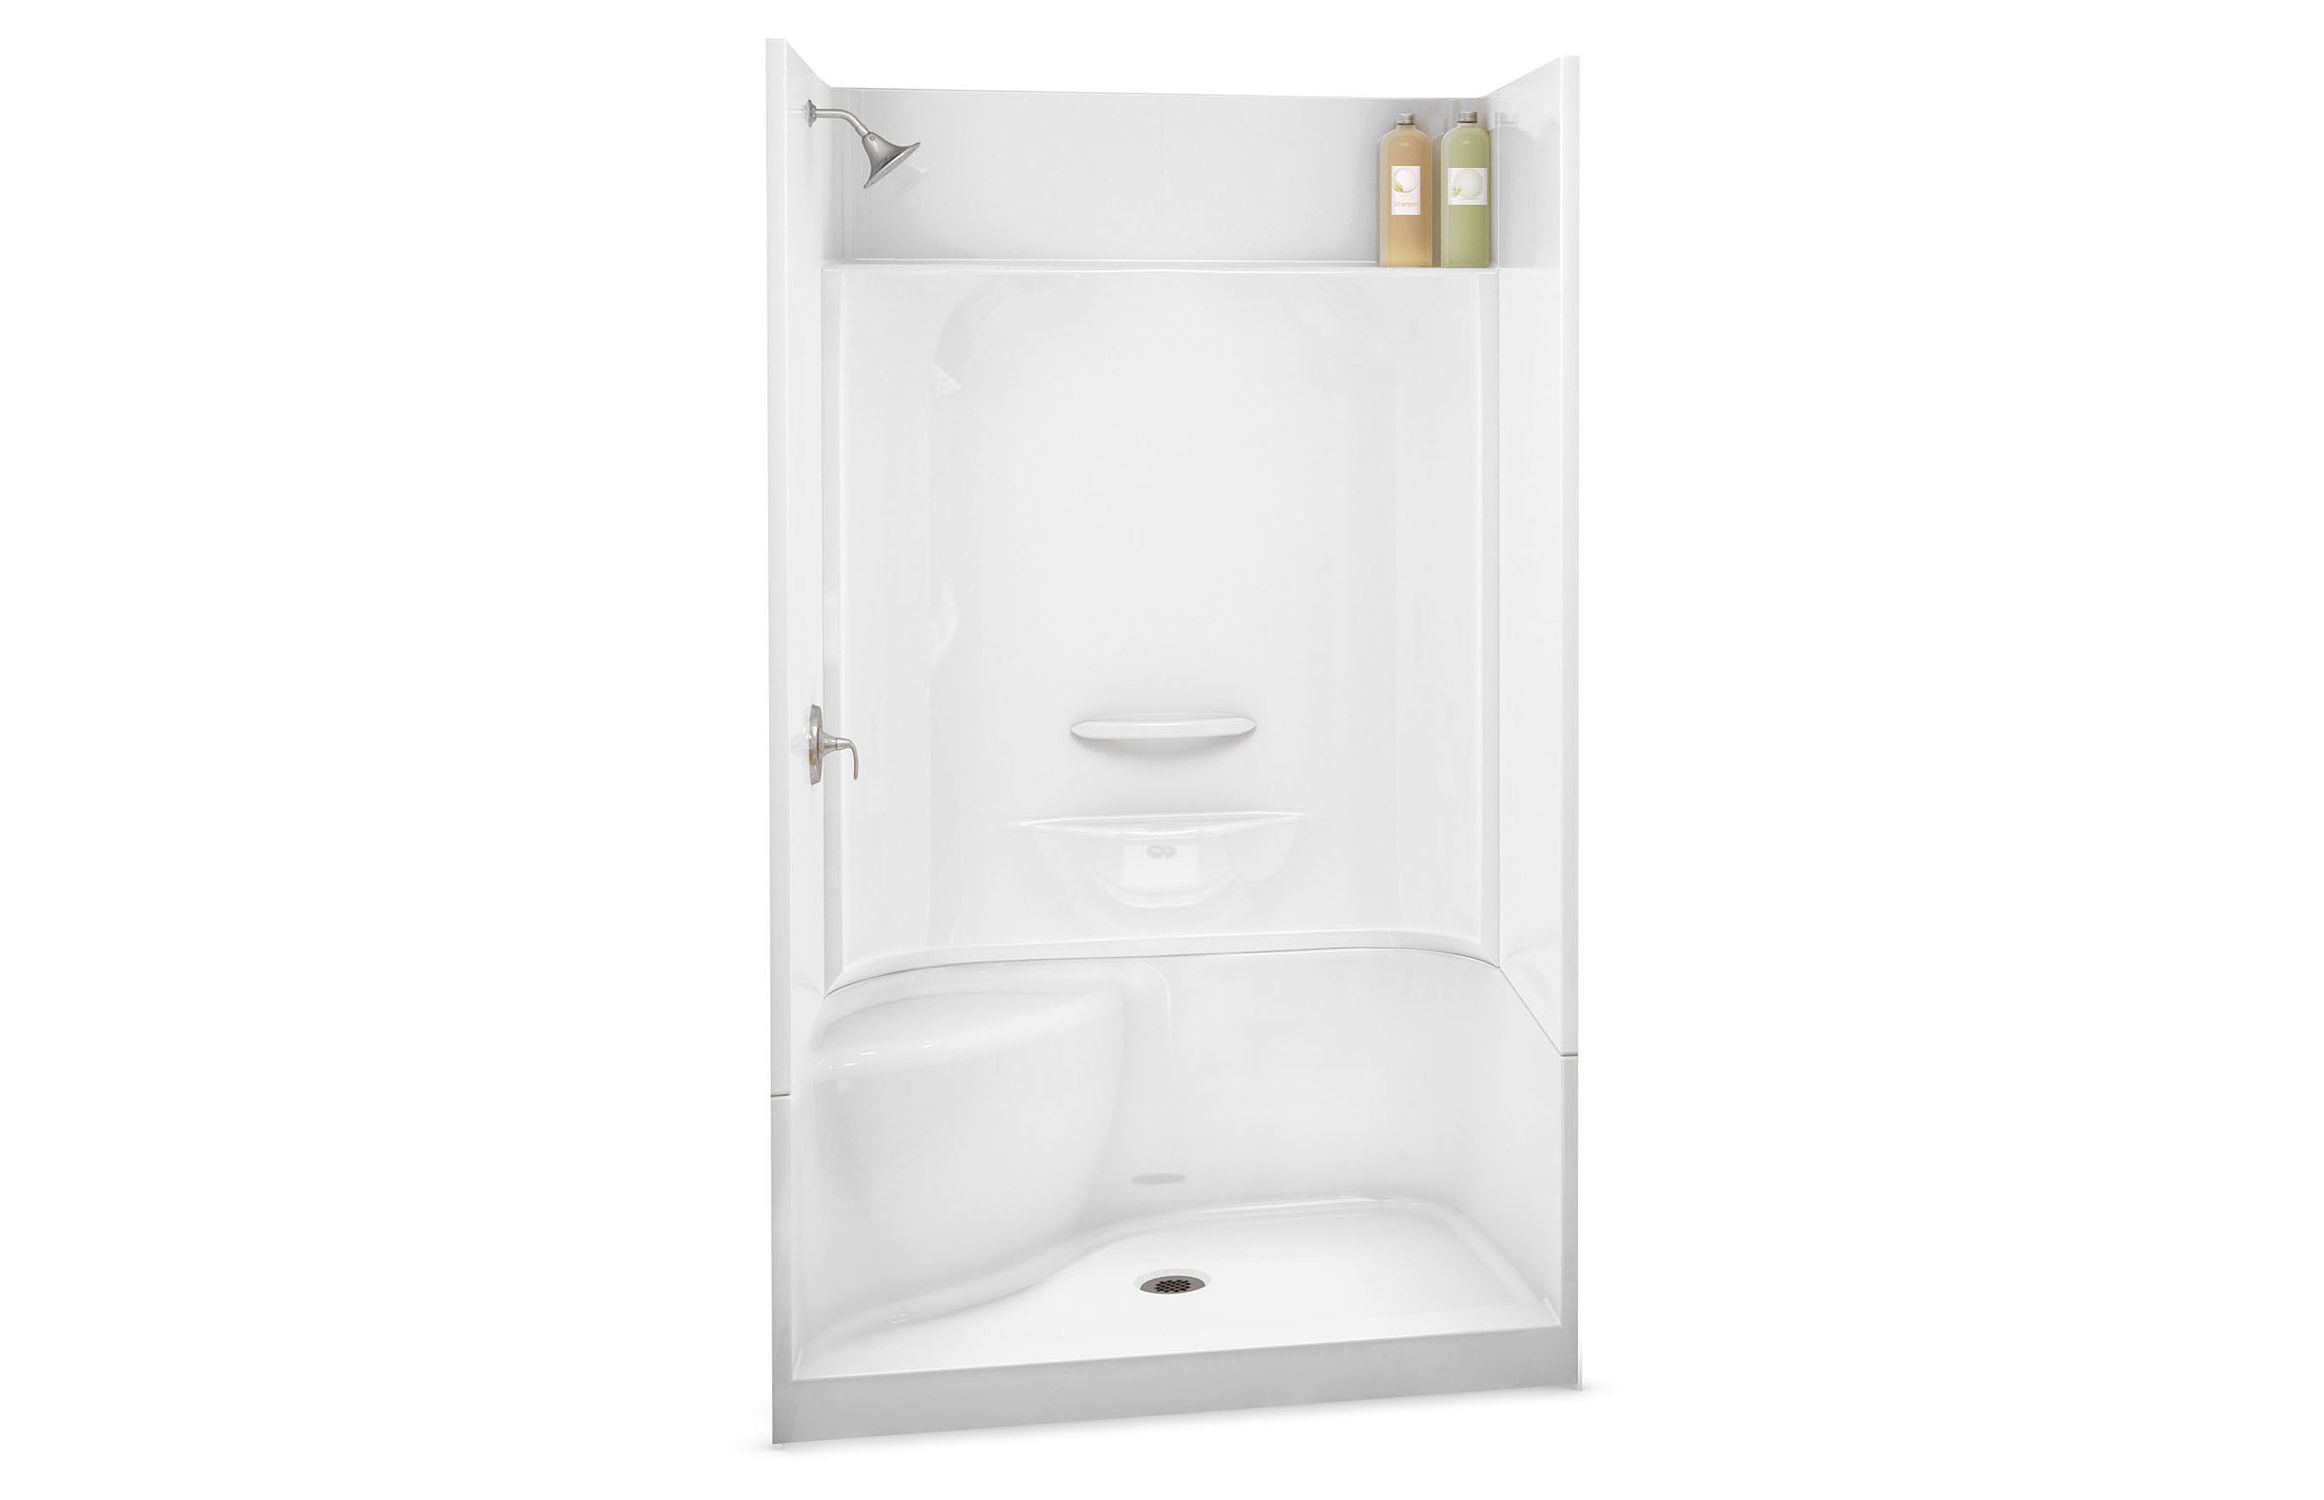 Acrylic shower cubicle / rectangular / with hinged door - KDS 3448 ...